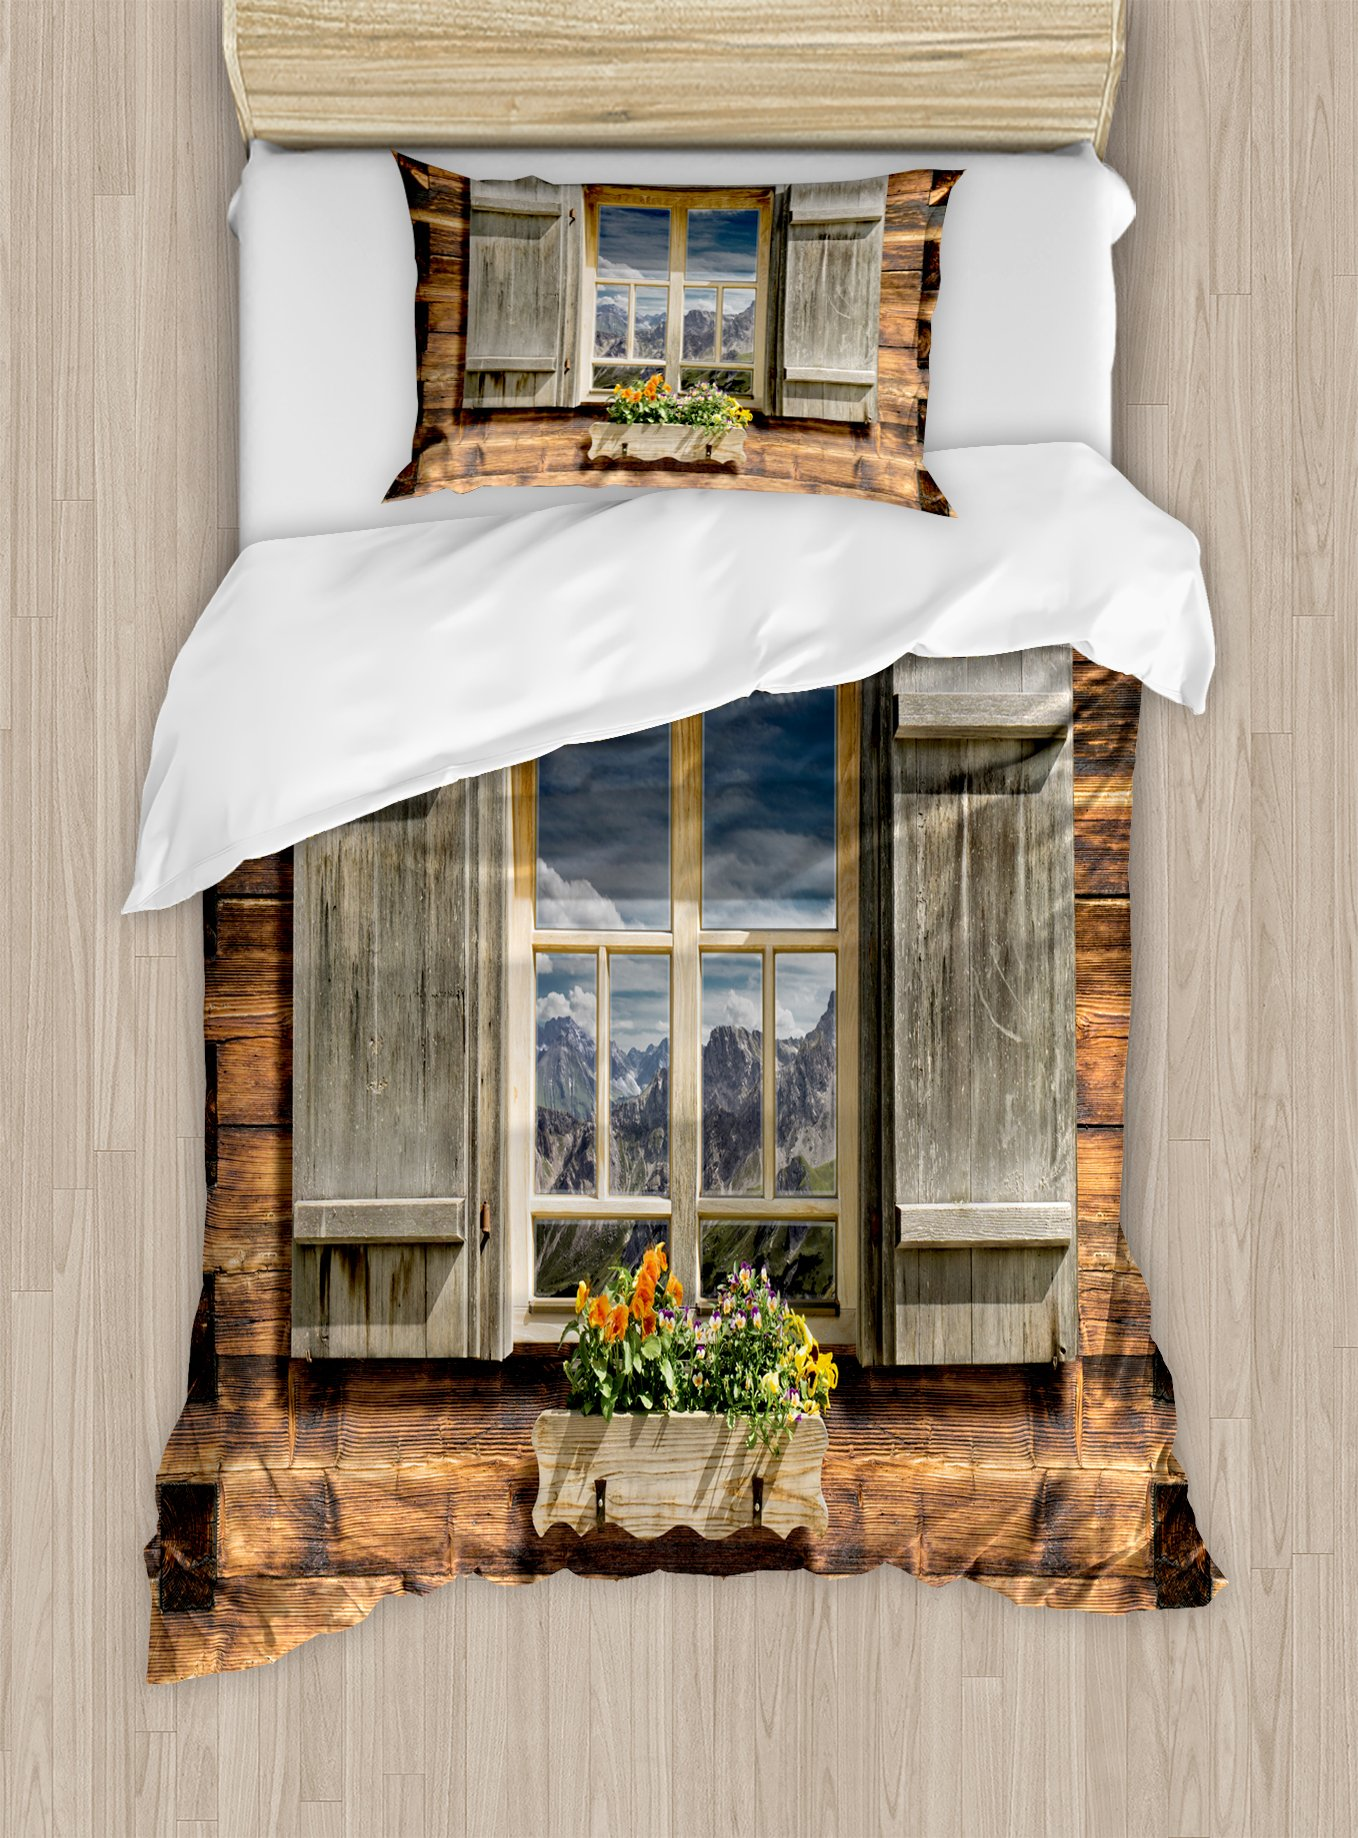 Ambesonne Shutters Duvet Cover Set Twin Size, Weathered Facade of A Mountain Hut with Summer Mountain Reflections on Window, Decorative 2 Piece Bedding Set with 1 Pillow Sham, Brown Green